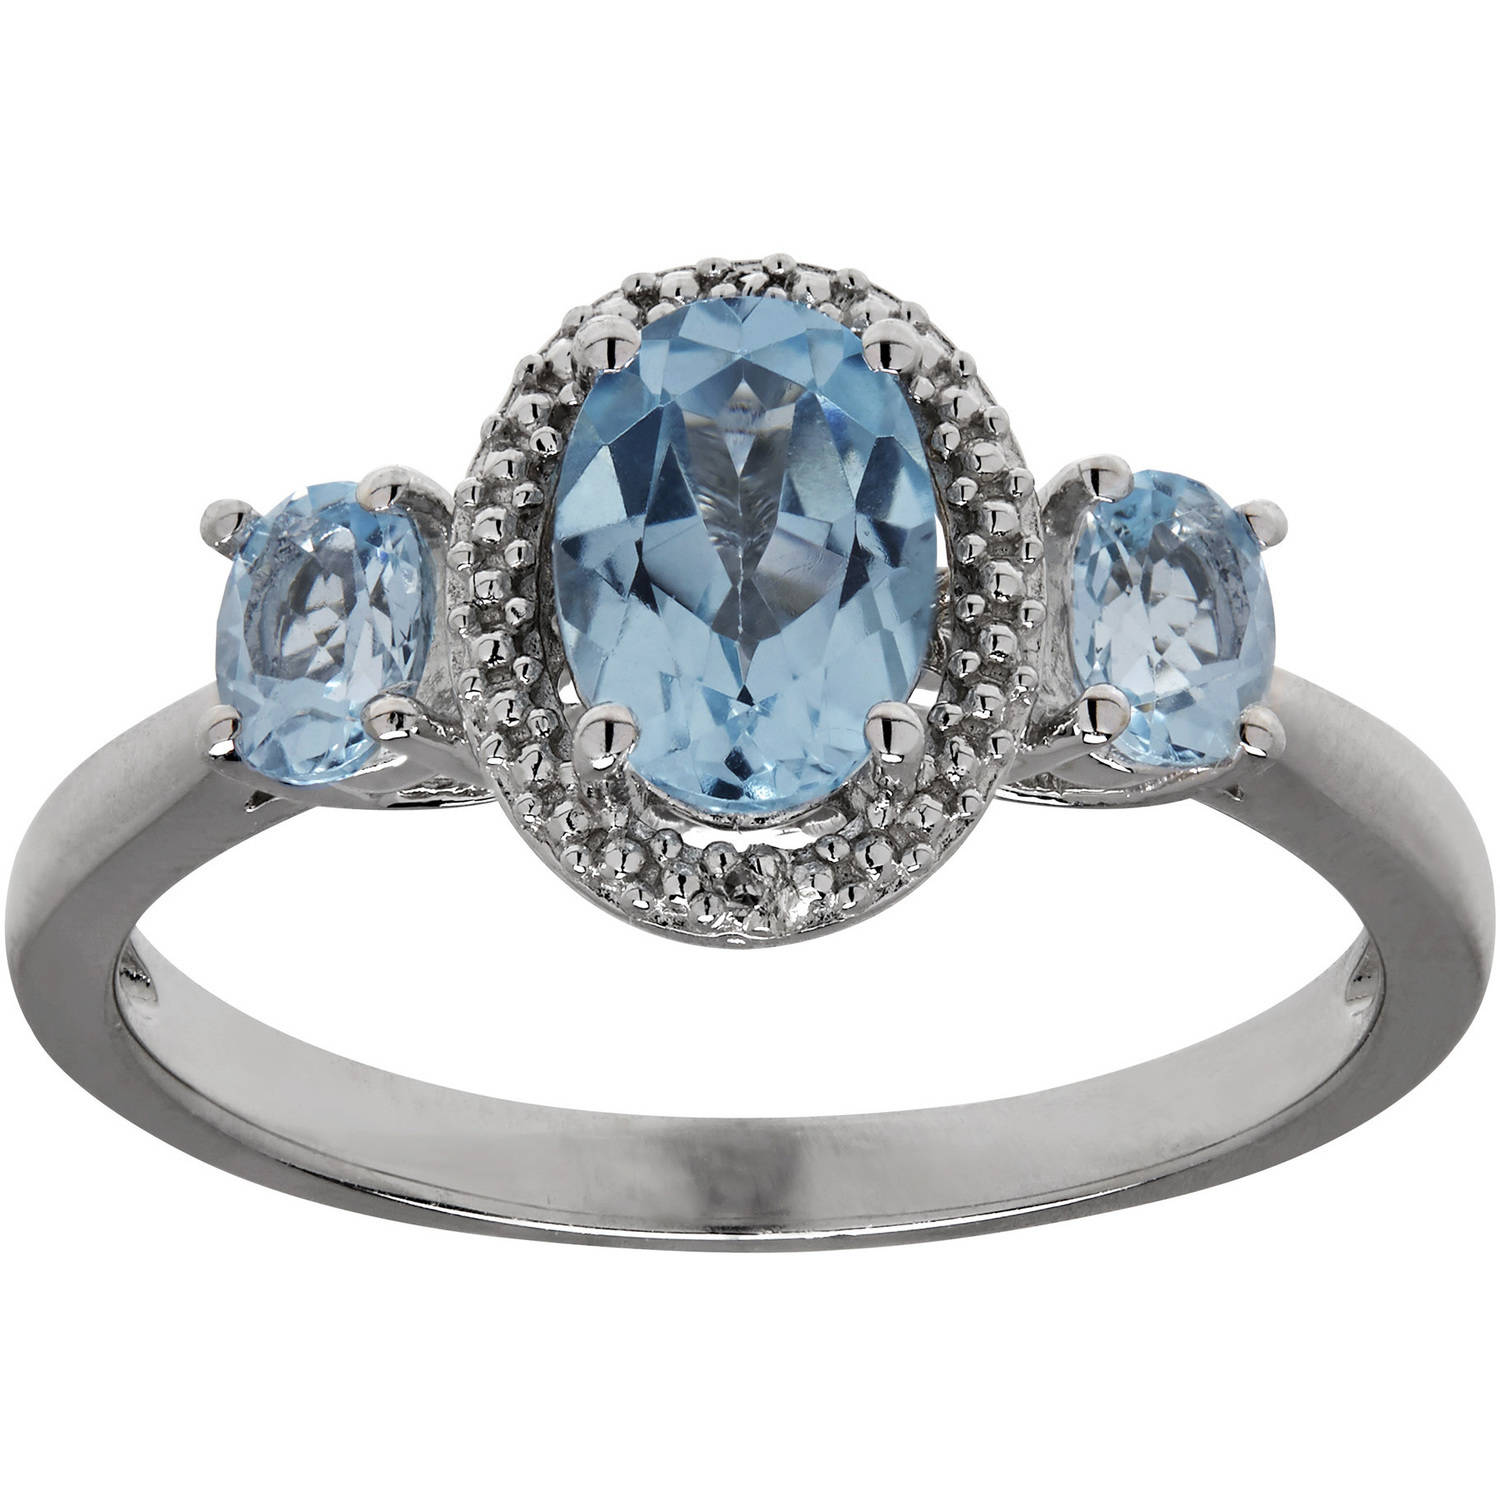 diamond ring campbell specialists oval gold eternity blue products ireland engagement sapphire light cut white